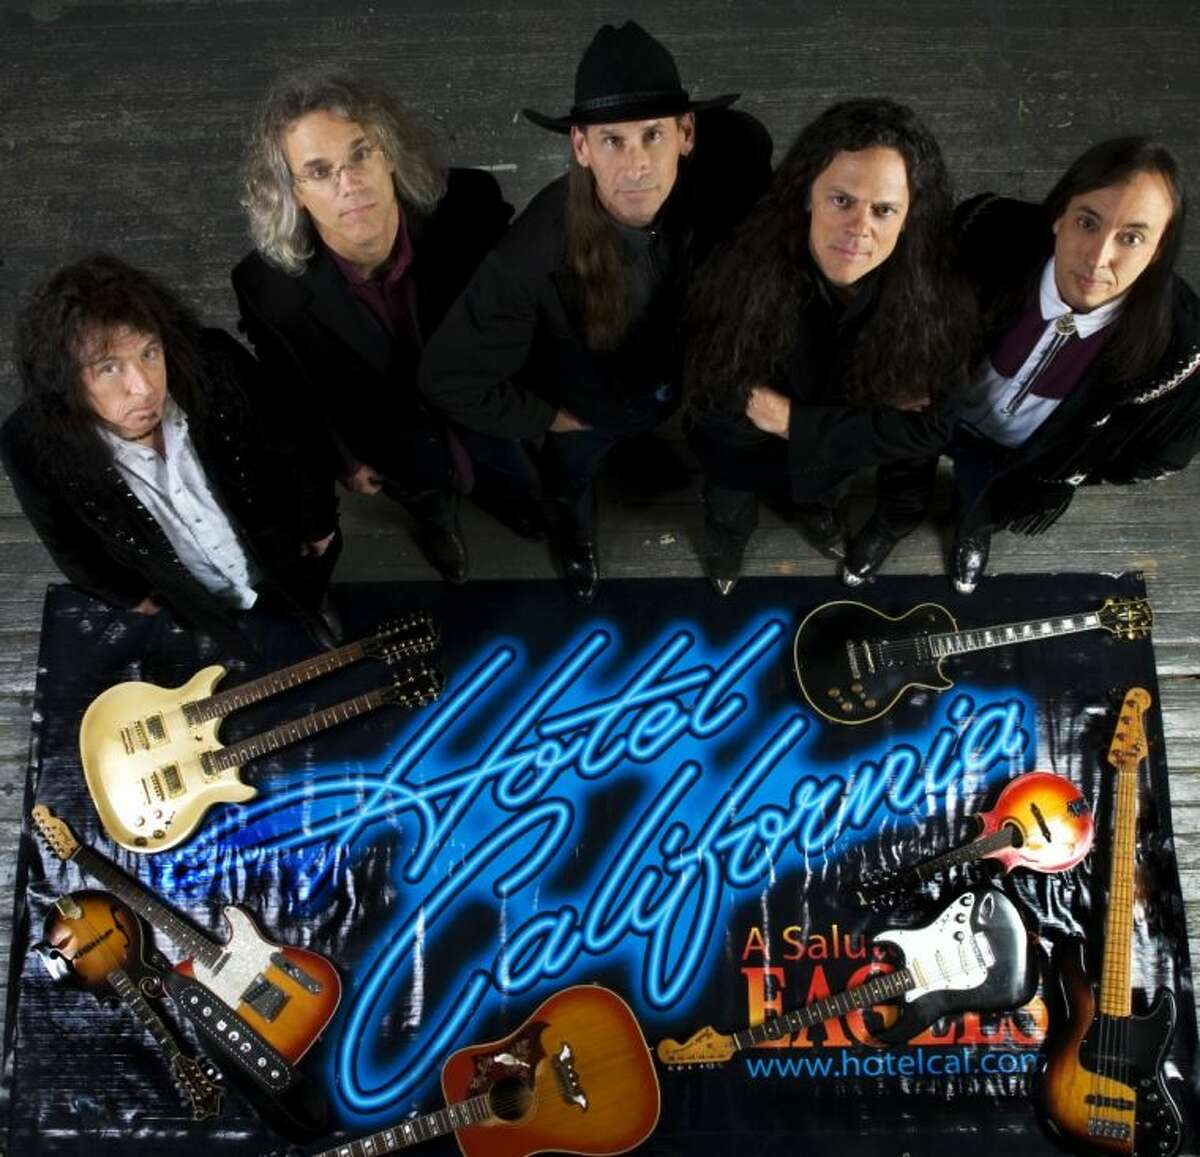 Hotel California A Salute to the Eagles plays at the Crighton Theatre June 1 at 7:30 p.m. through the Montgomery County Performing Arts Society.